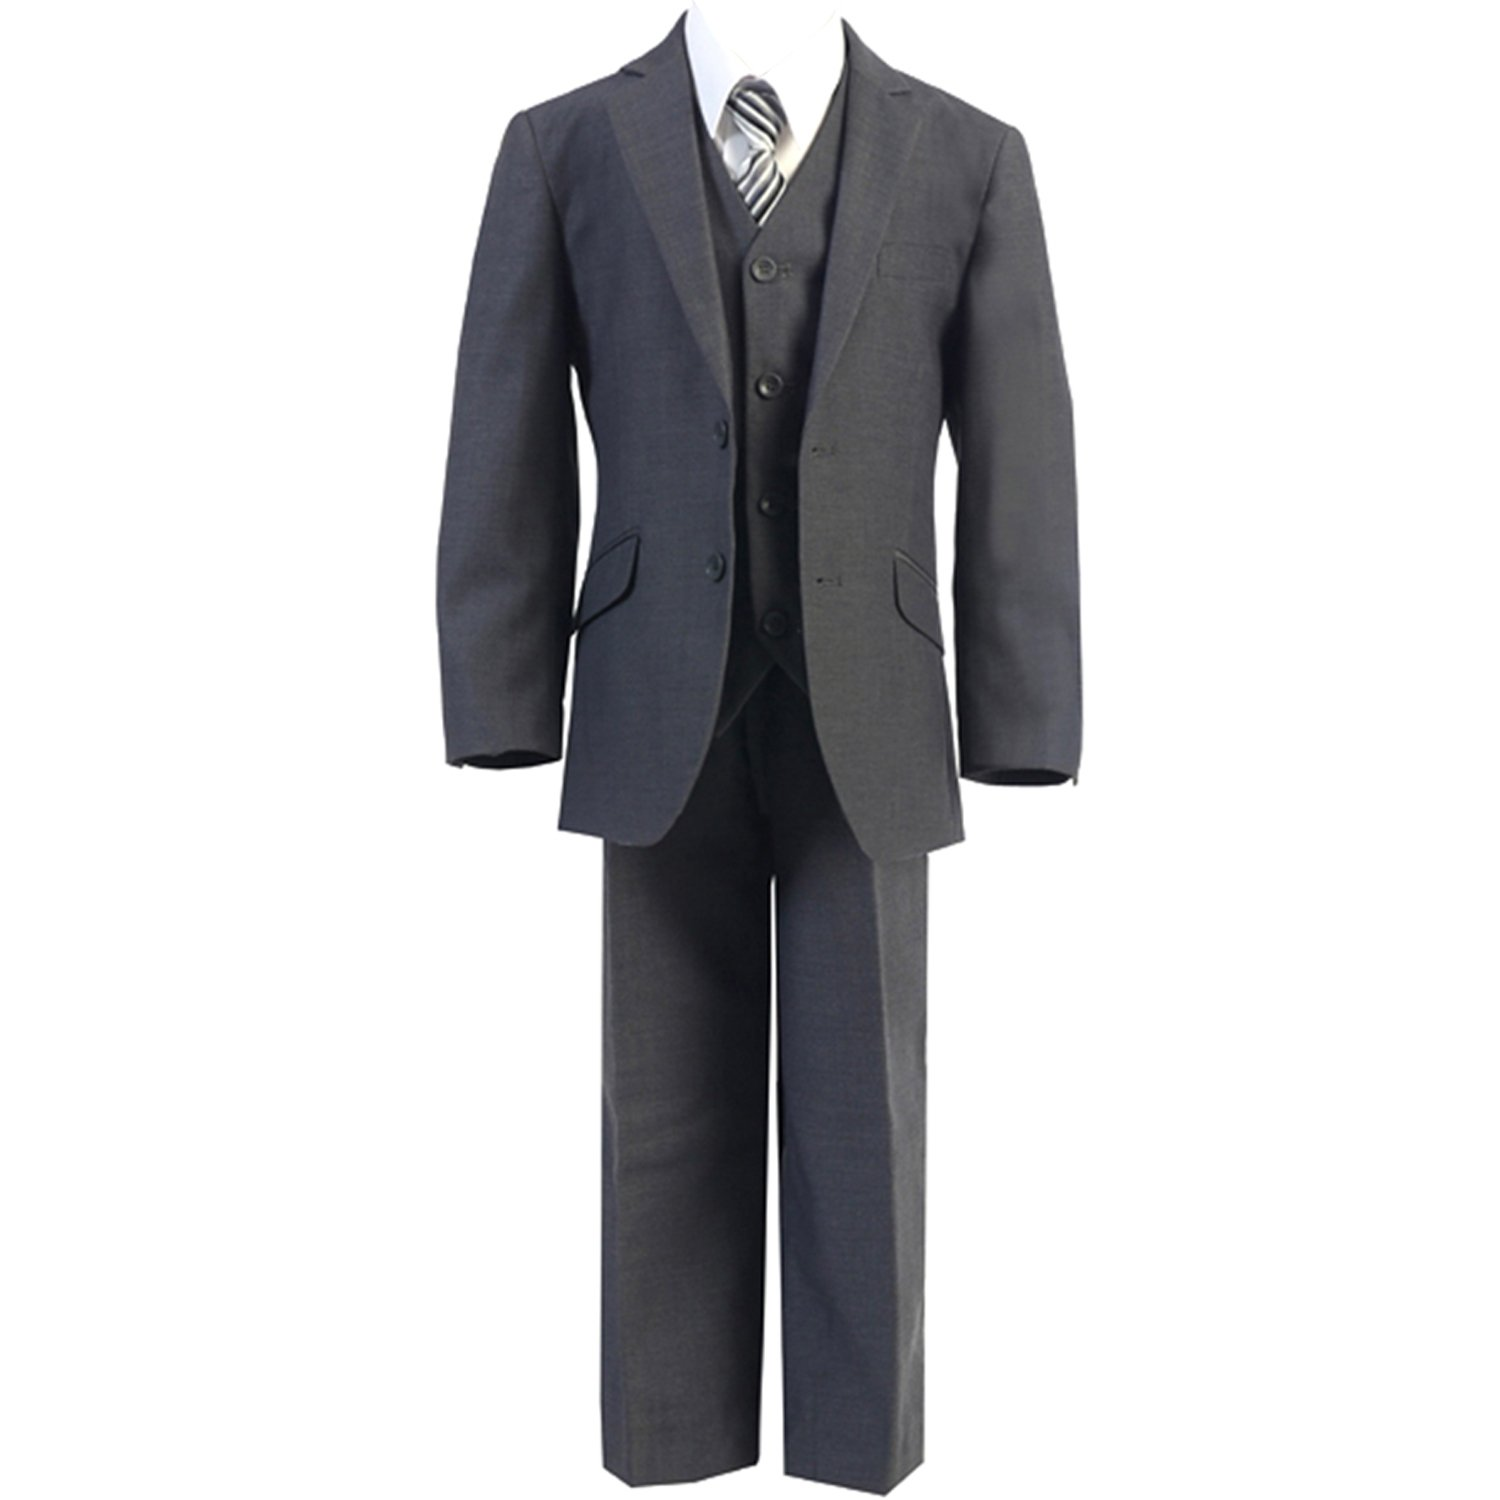 HBDesign Boys'3 piece 2 Button Notch Lapel Fit Formal Suite Dark Grey